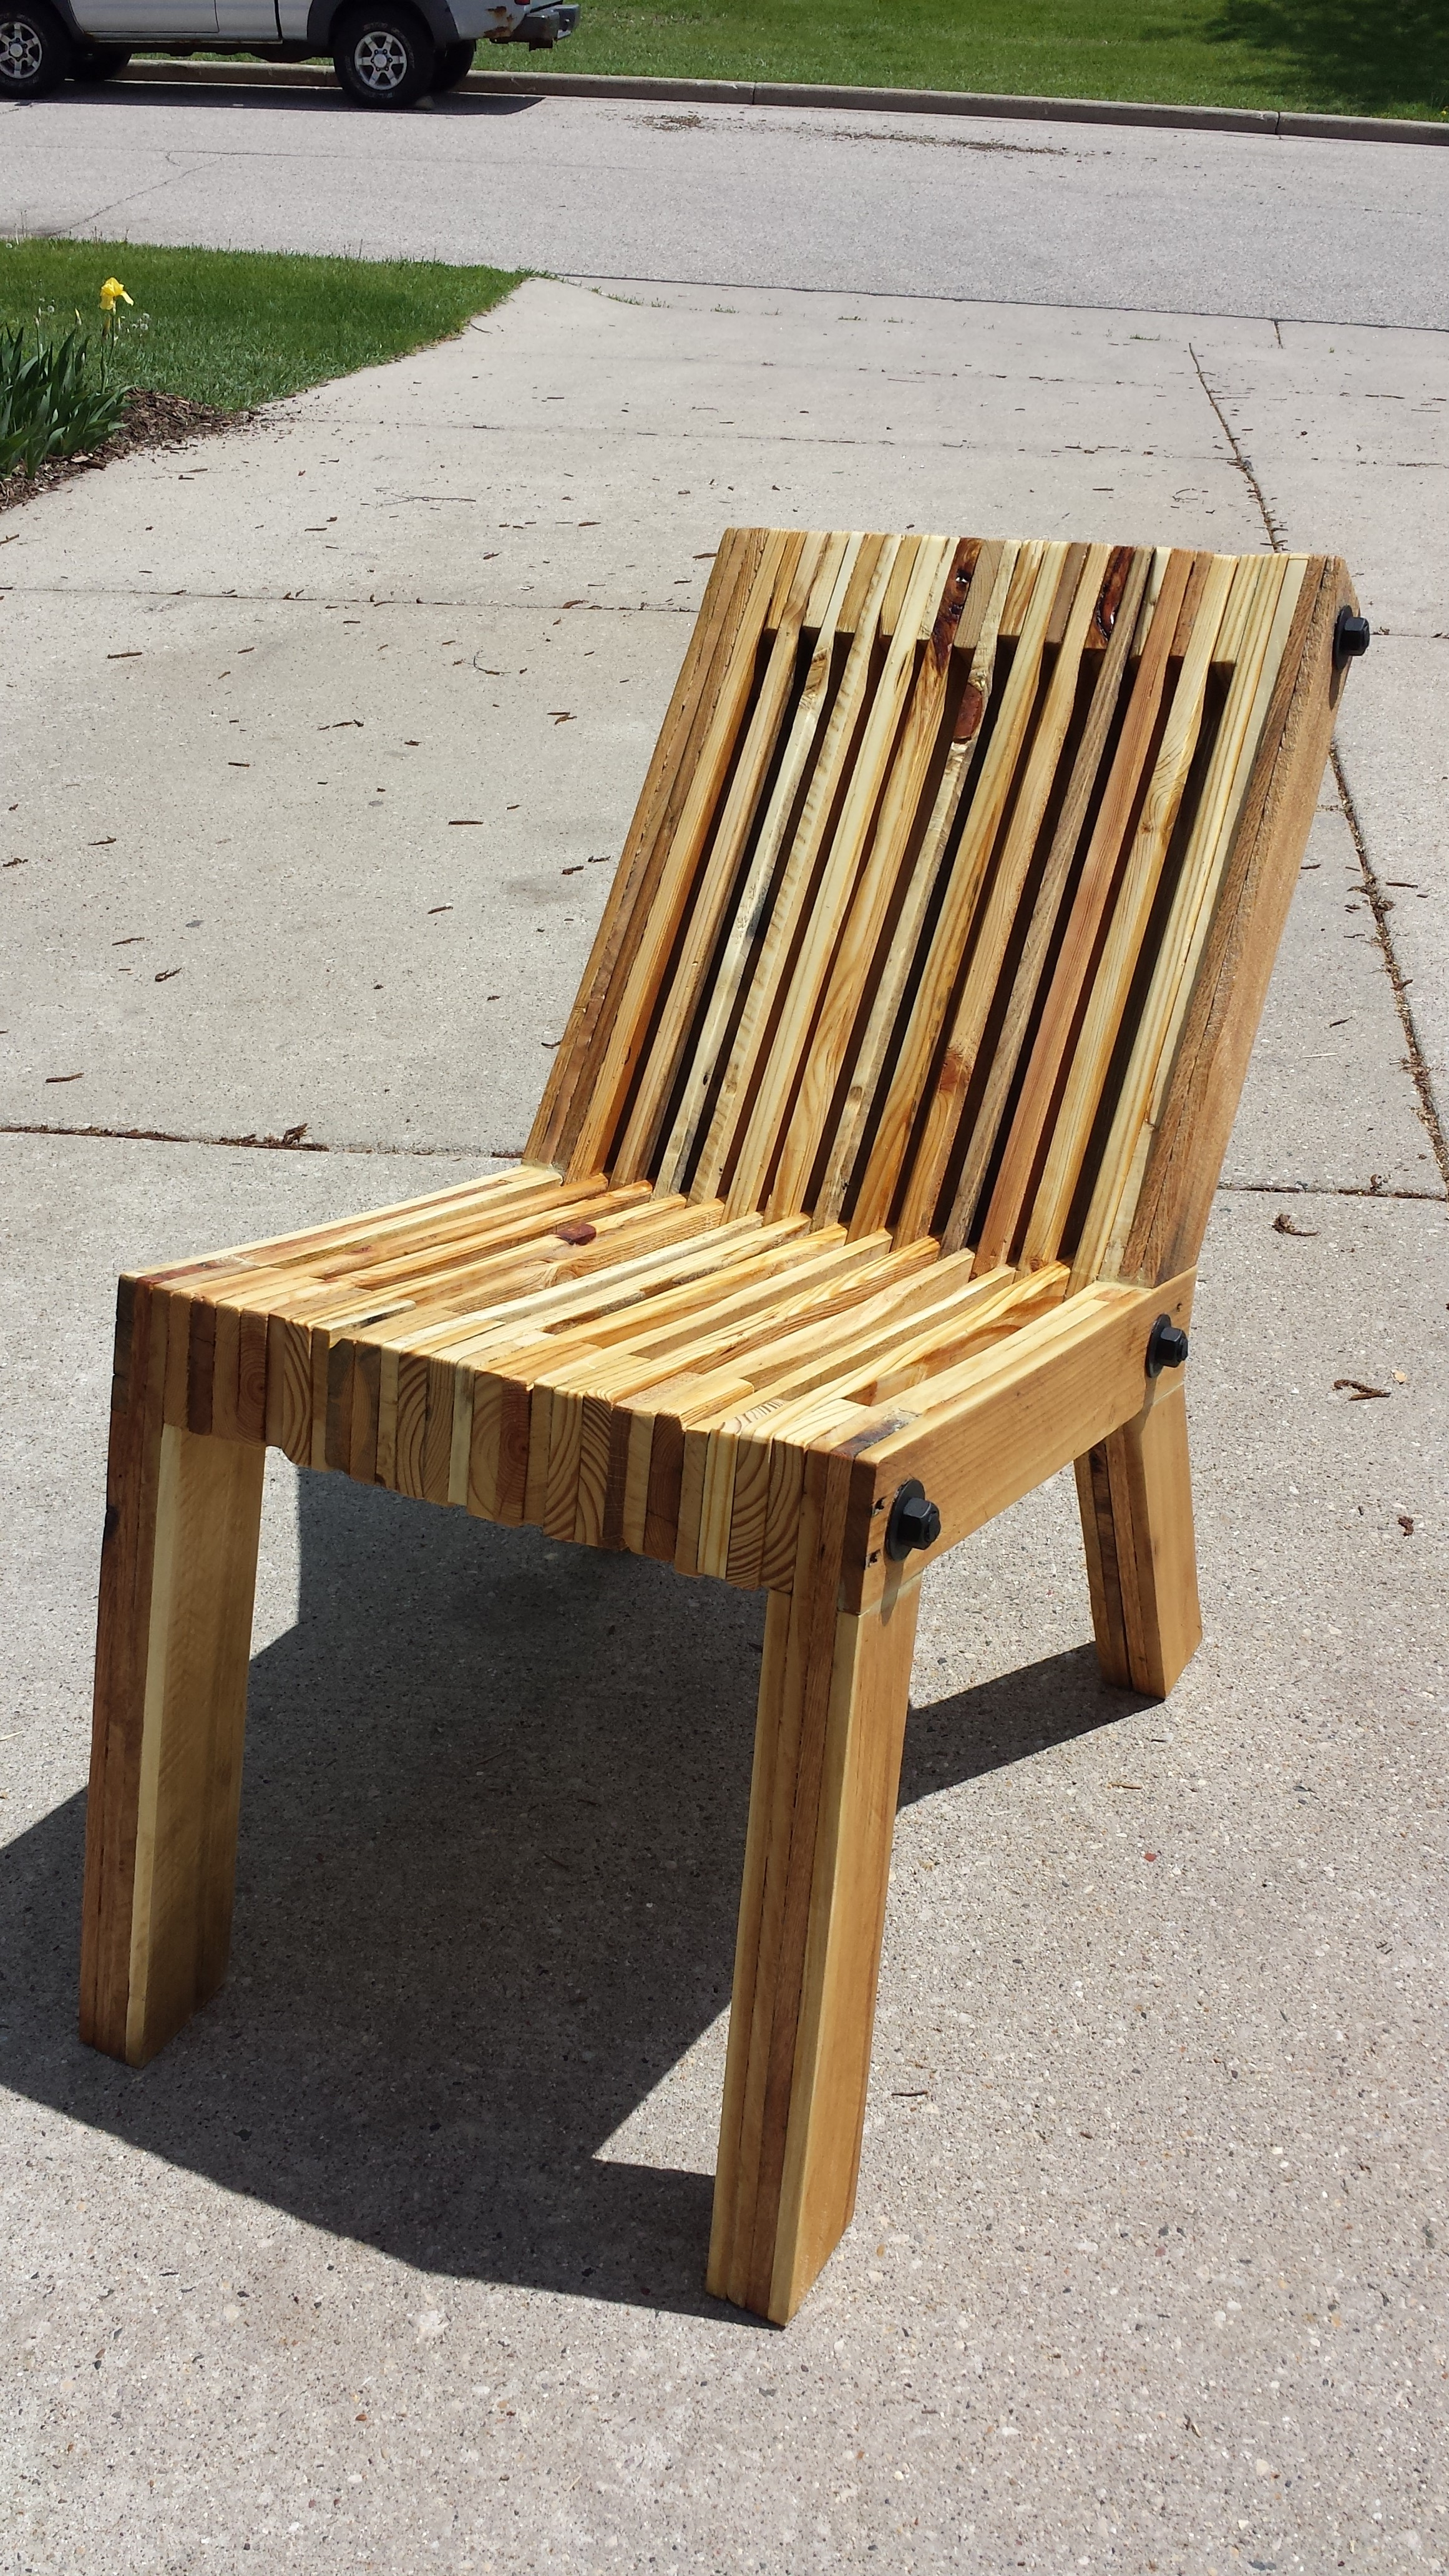 Picture of Reclined Pallet Wood Chair